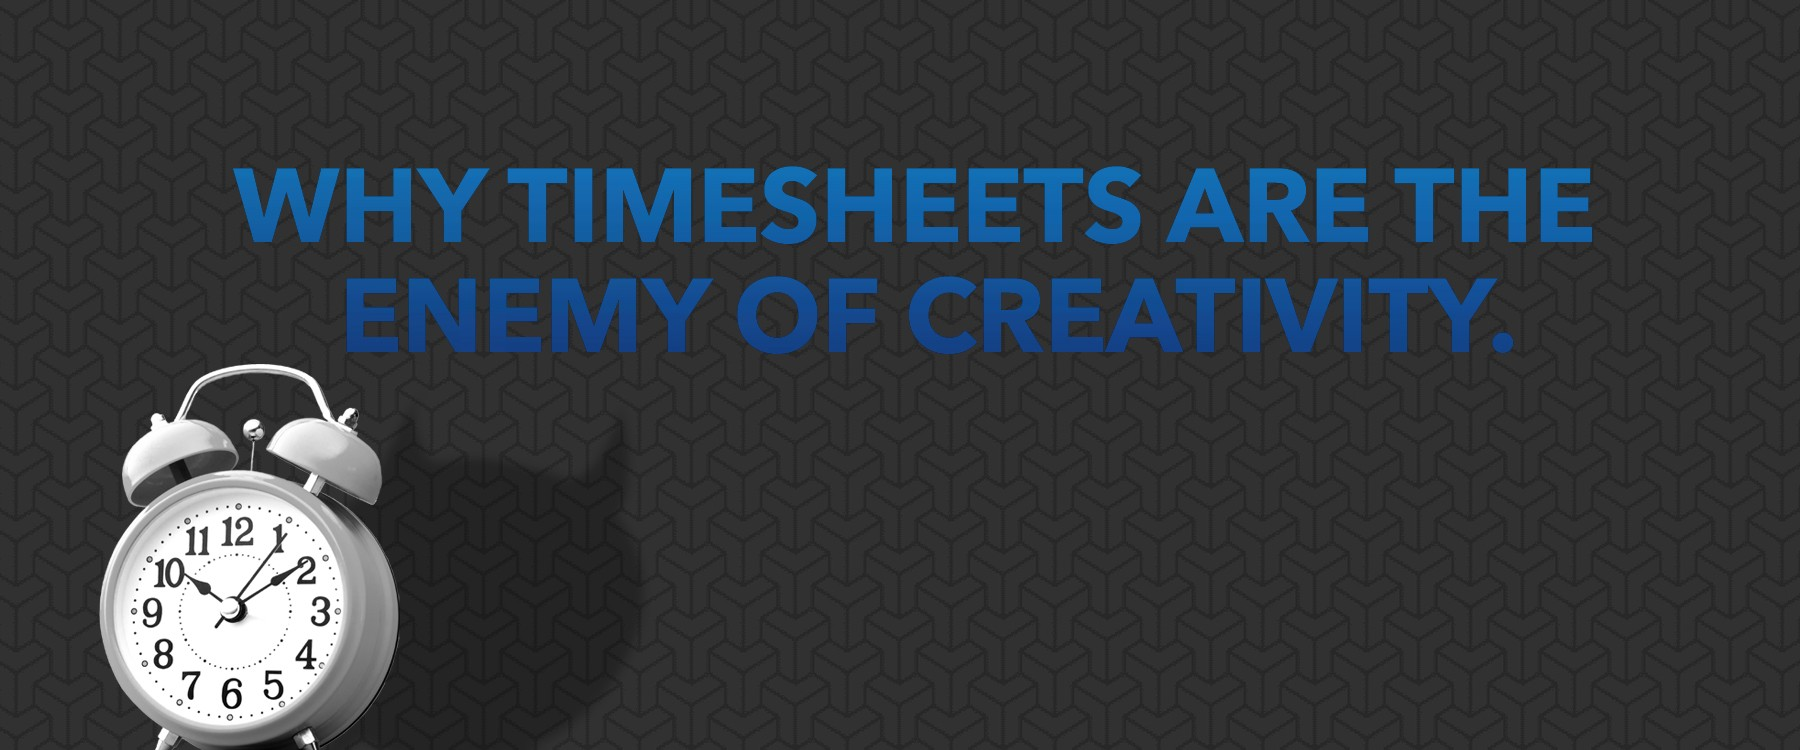 why timesheets are the enemy of creativity vunela